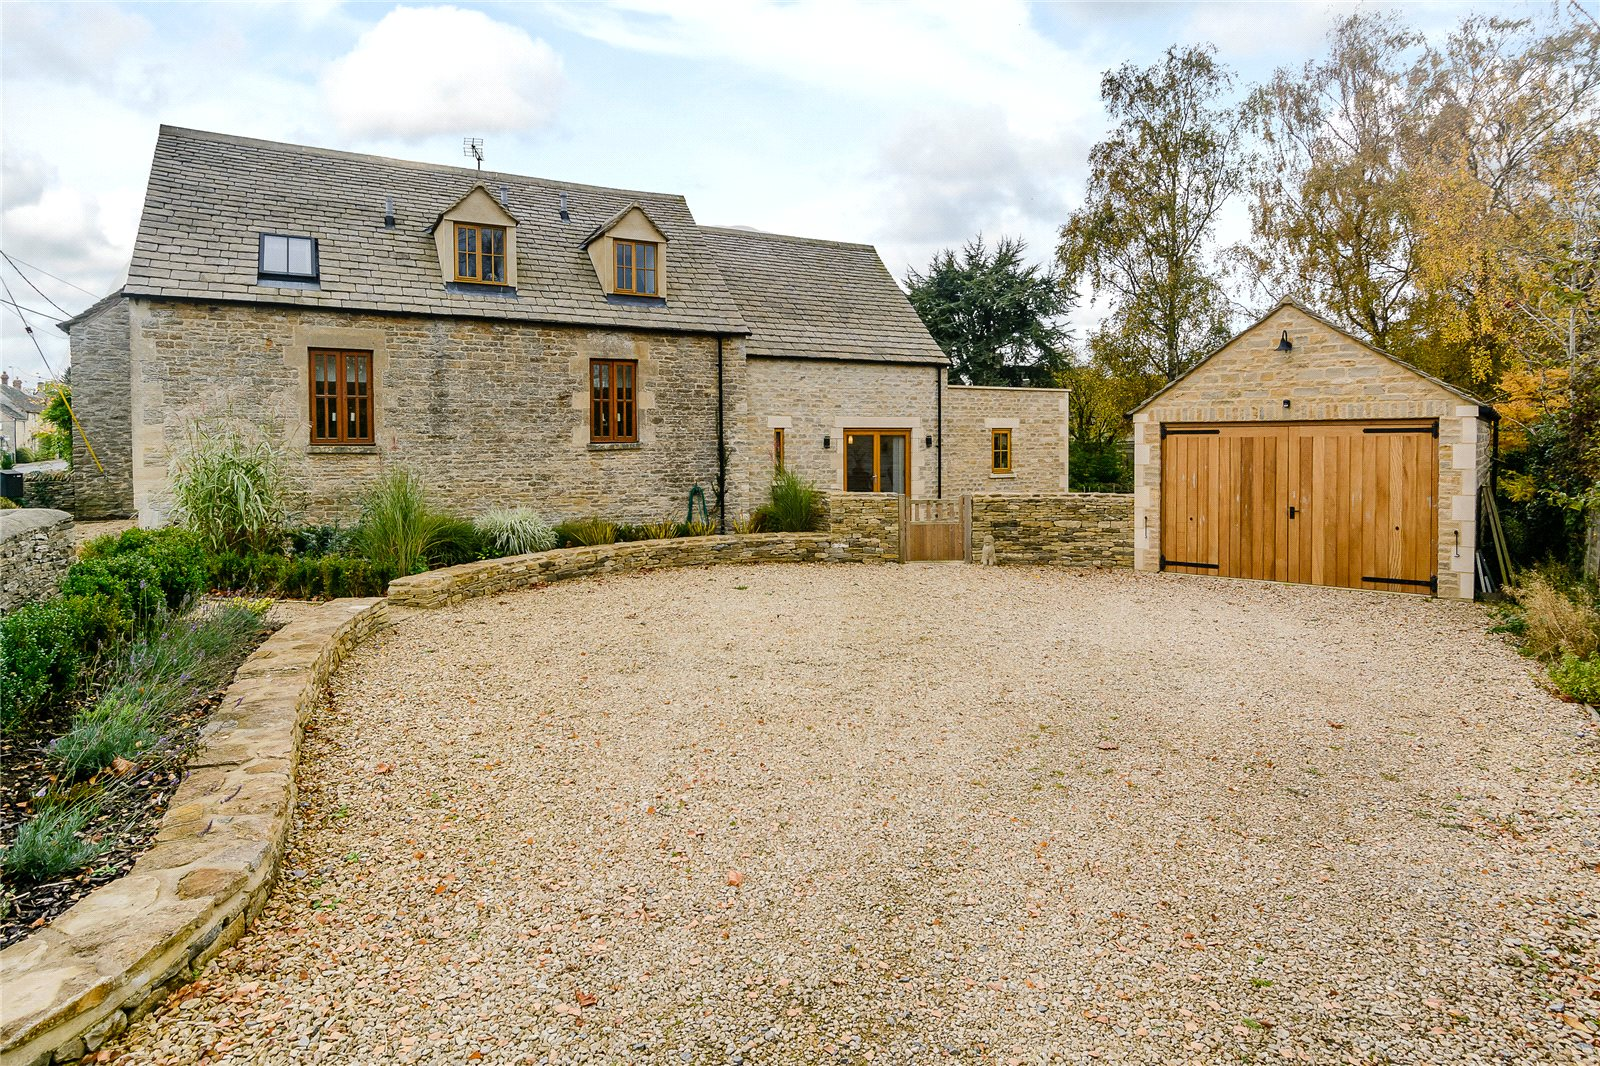 Additional photo for property listing at Bell Lane, Poulton, Cirencester, Gloucestershire, GL7 Cirencester, England